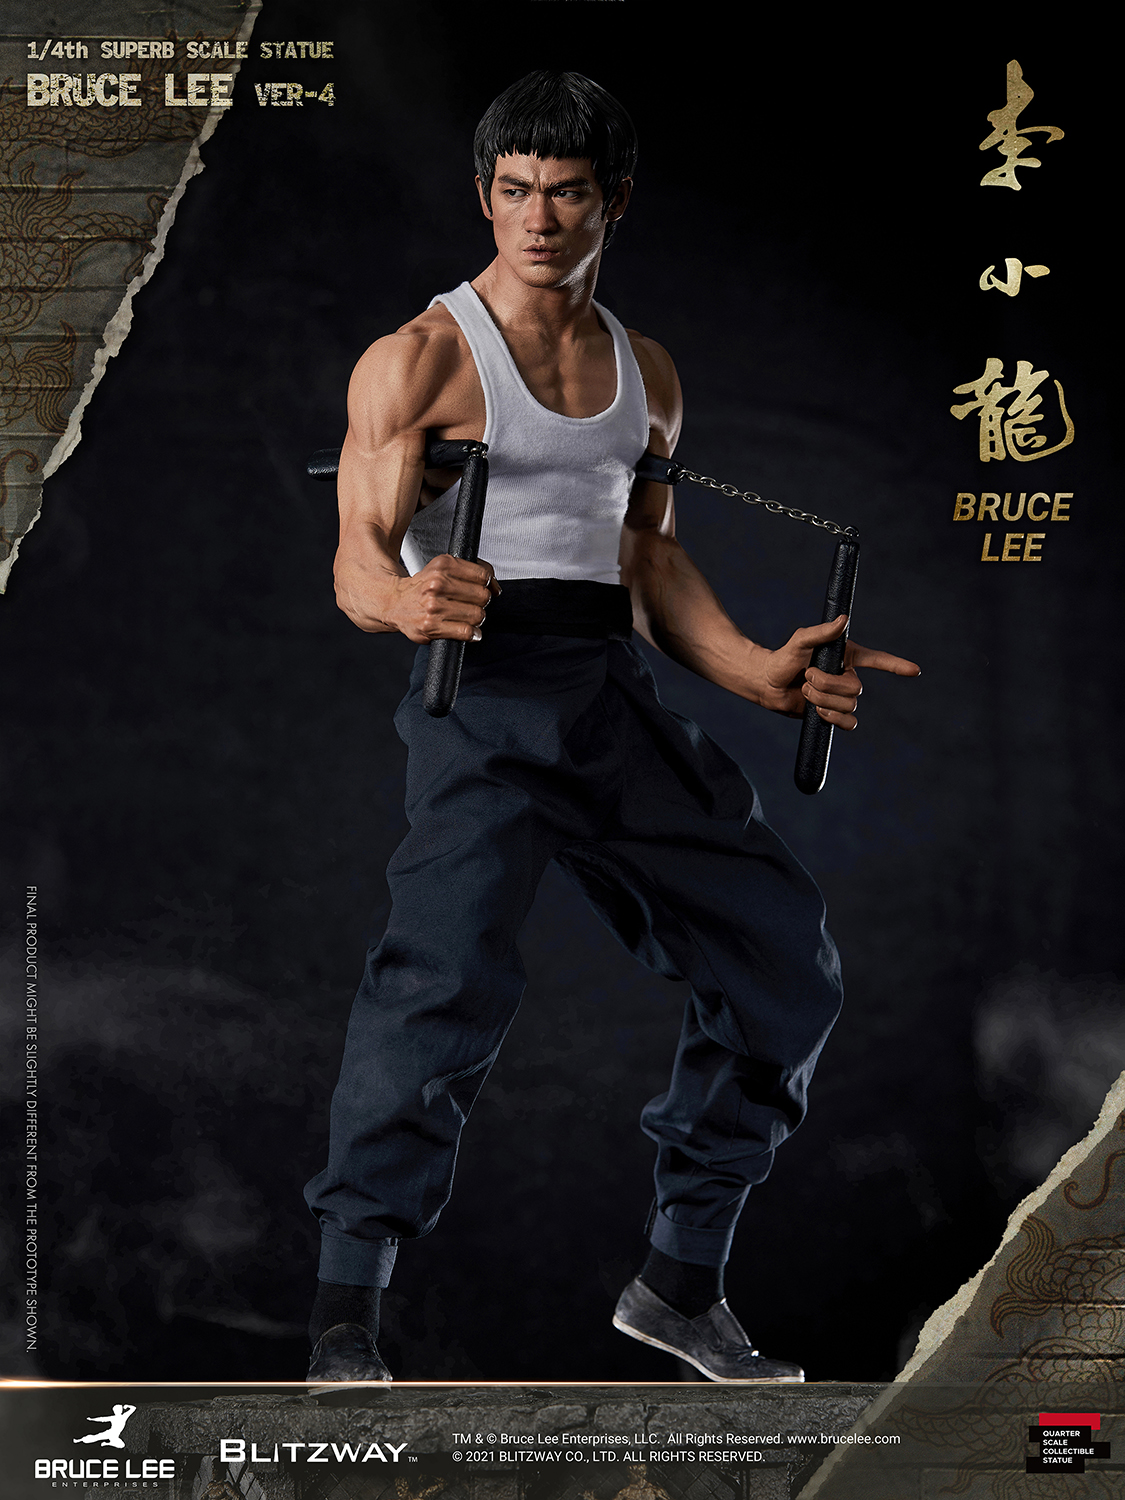 Link a Bruce Lee_Tribute Statue_Blitzway_ver 4- (15)